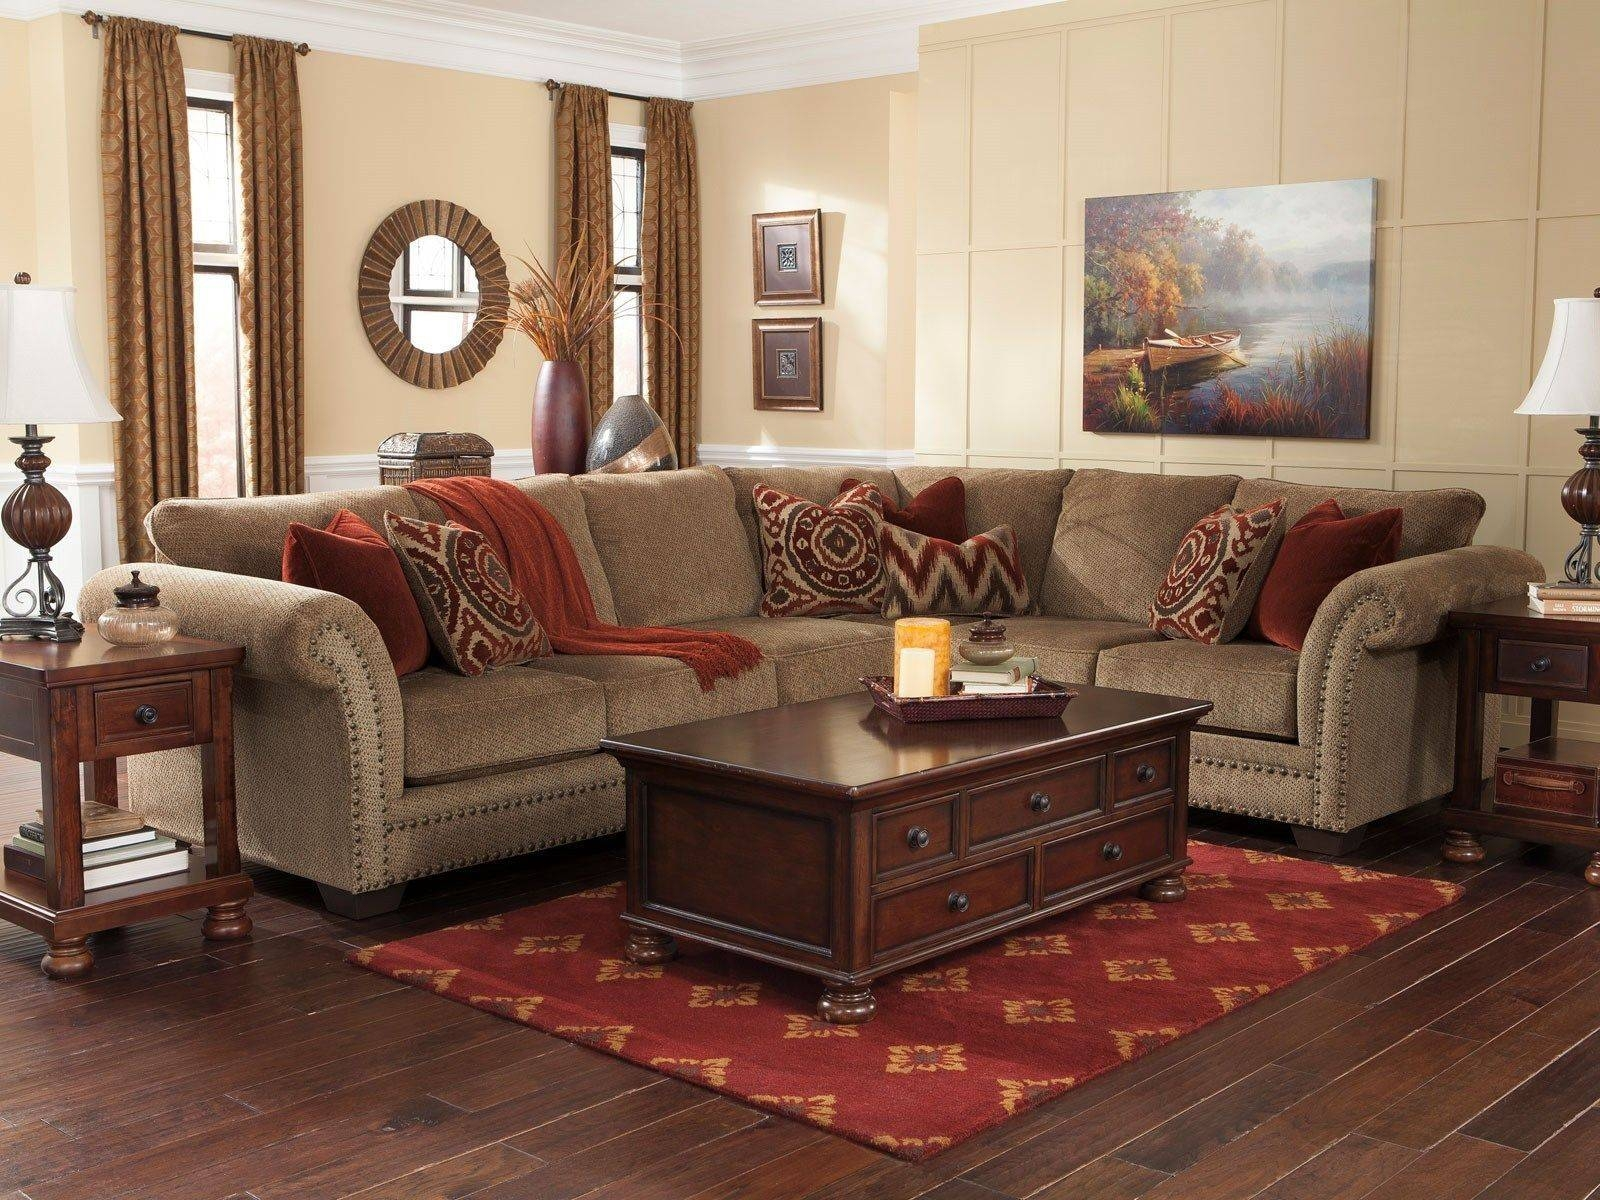 ▻ Sofa : 36 3Pcs Tan Chenille Sofa Couch Sectional Set Living throughout Chenille Sectional Sofas (Image 30 of 30)